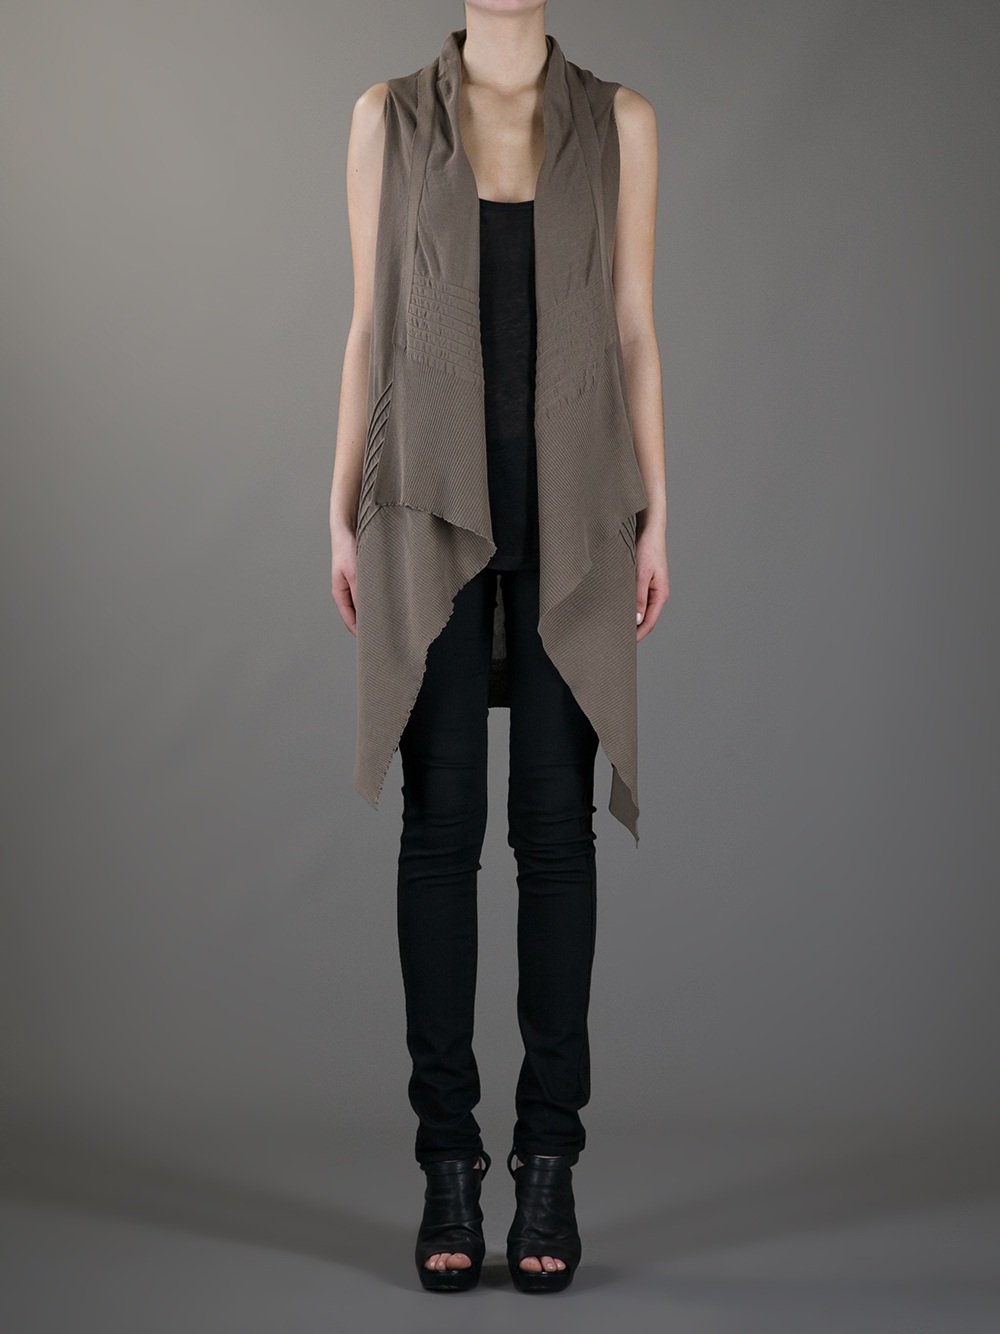 Rick owens Sleeveless Cardigan in Brown | Lyst